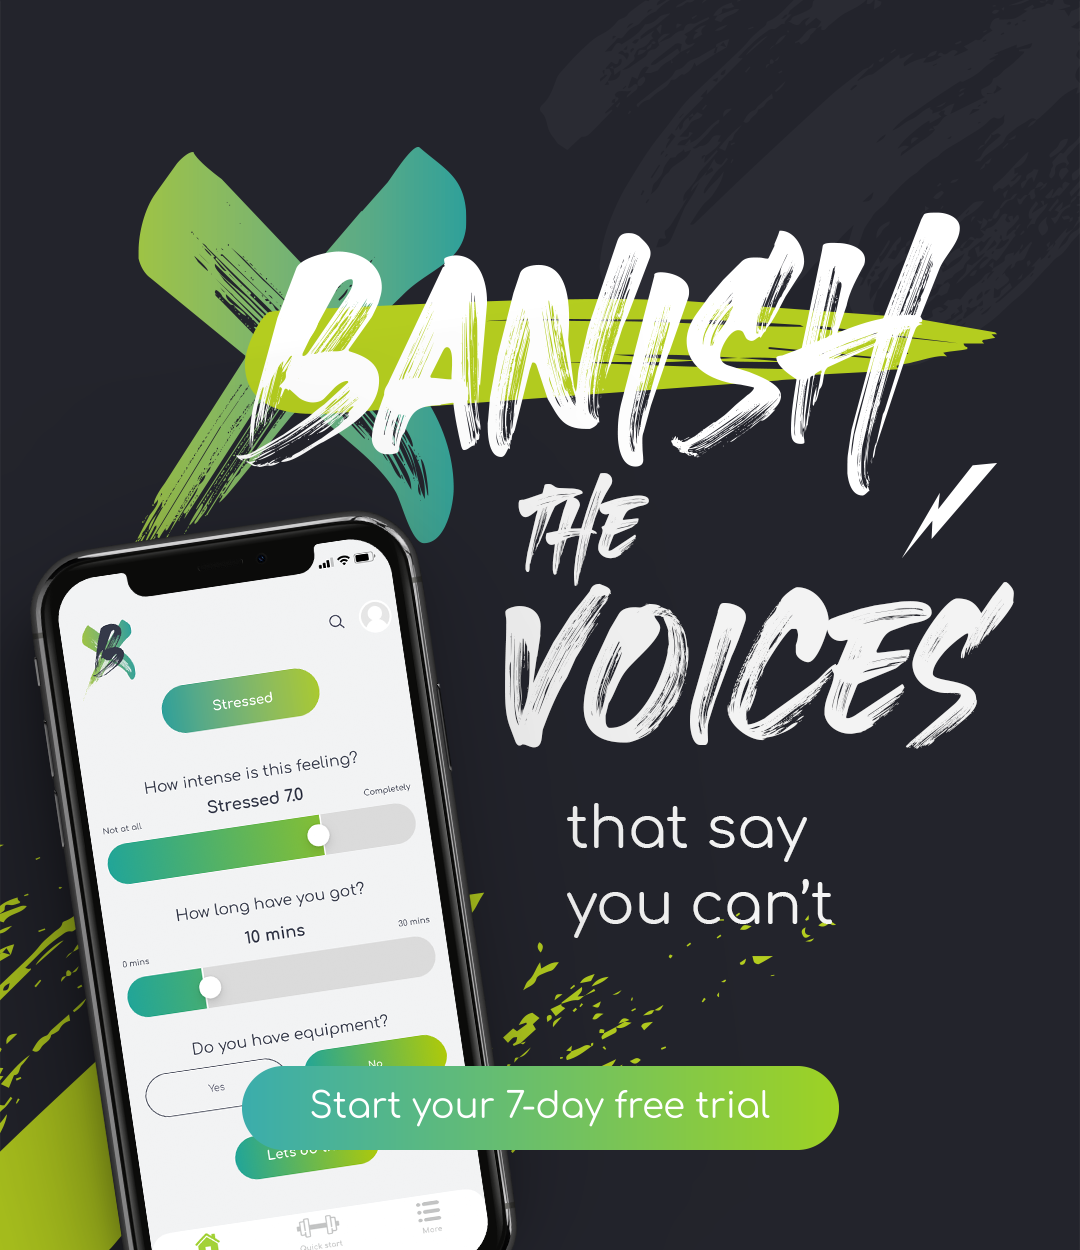 Banish the voices - 7-day trial CTA